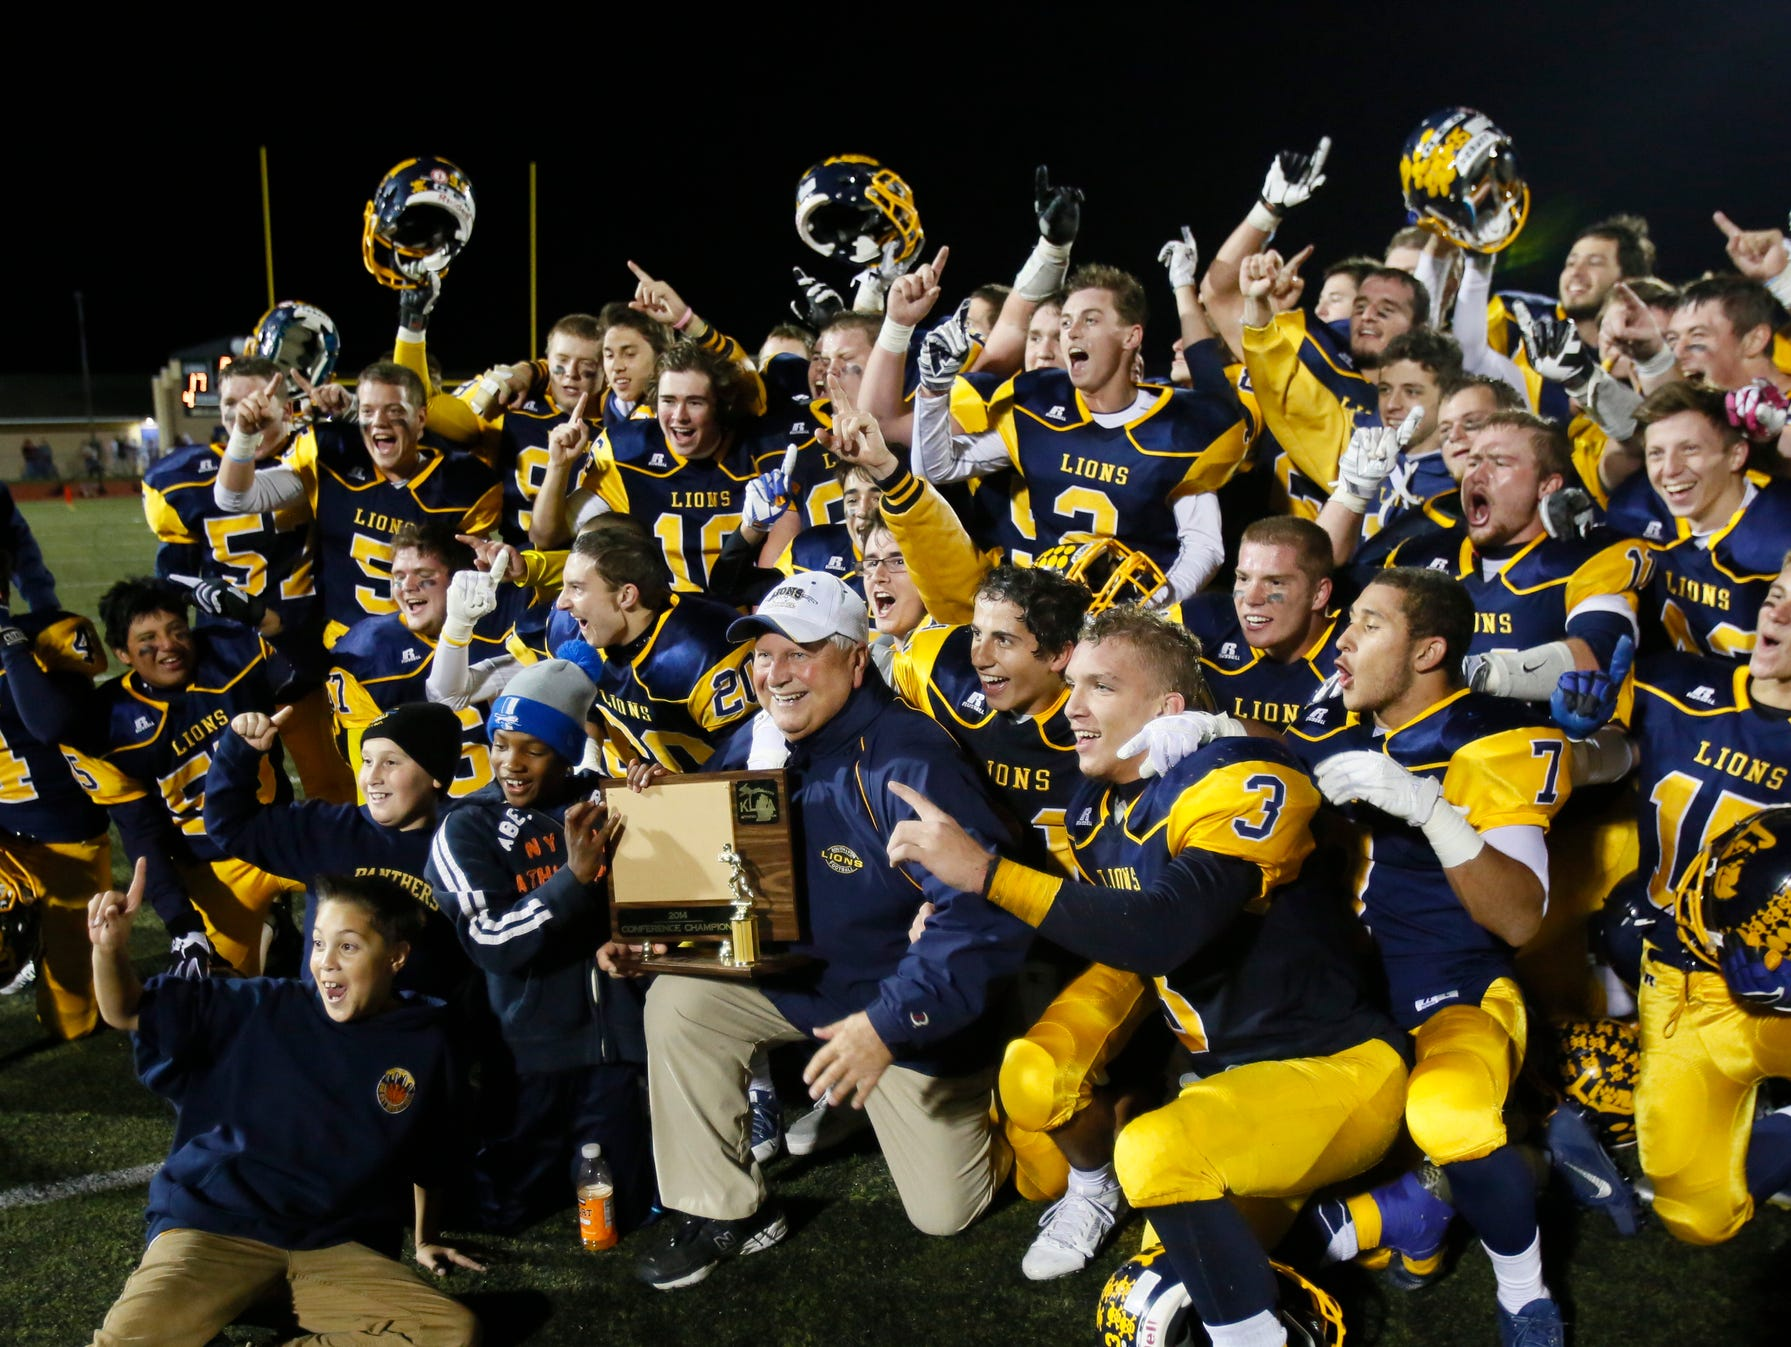 South Lyon coach Mark Thomas holds the district championship trophy as he and his players pose for photos to celebrate their 17-7 win over Canton on Oct. 17, 2014.